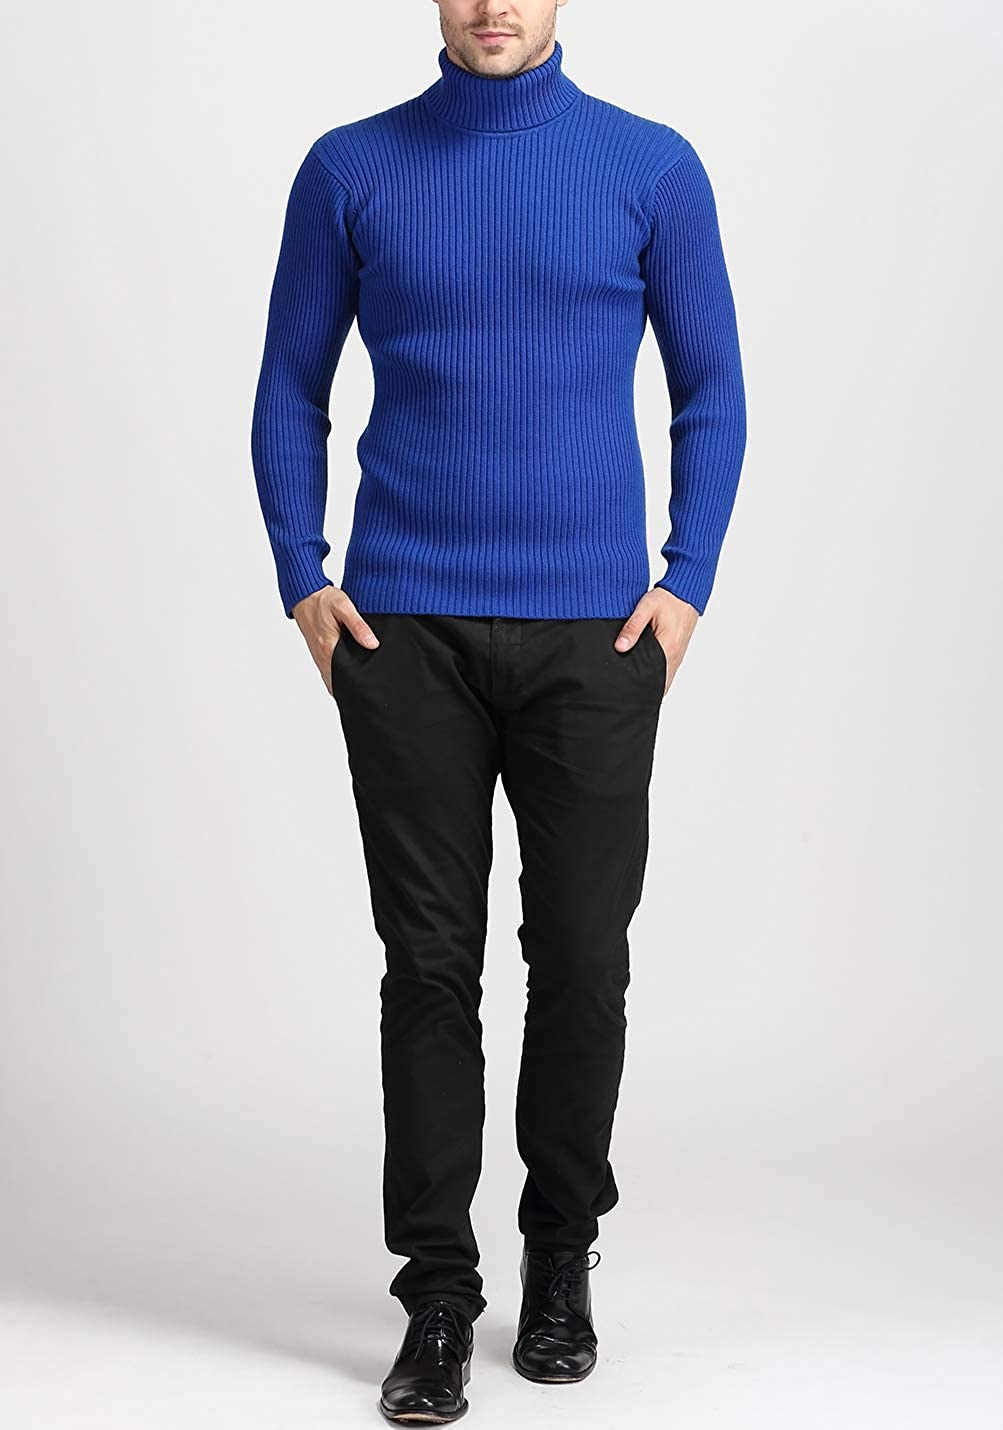 Gihuo Mens Slim Fit Ribbed Solid Color Turtleneck Knit Pullover Sweater